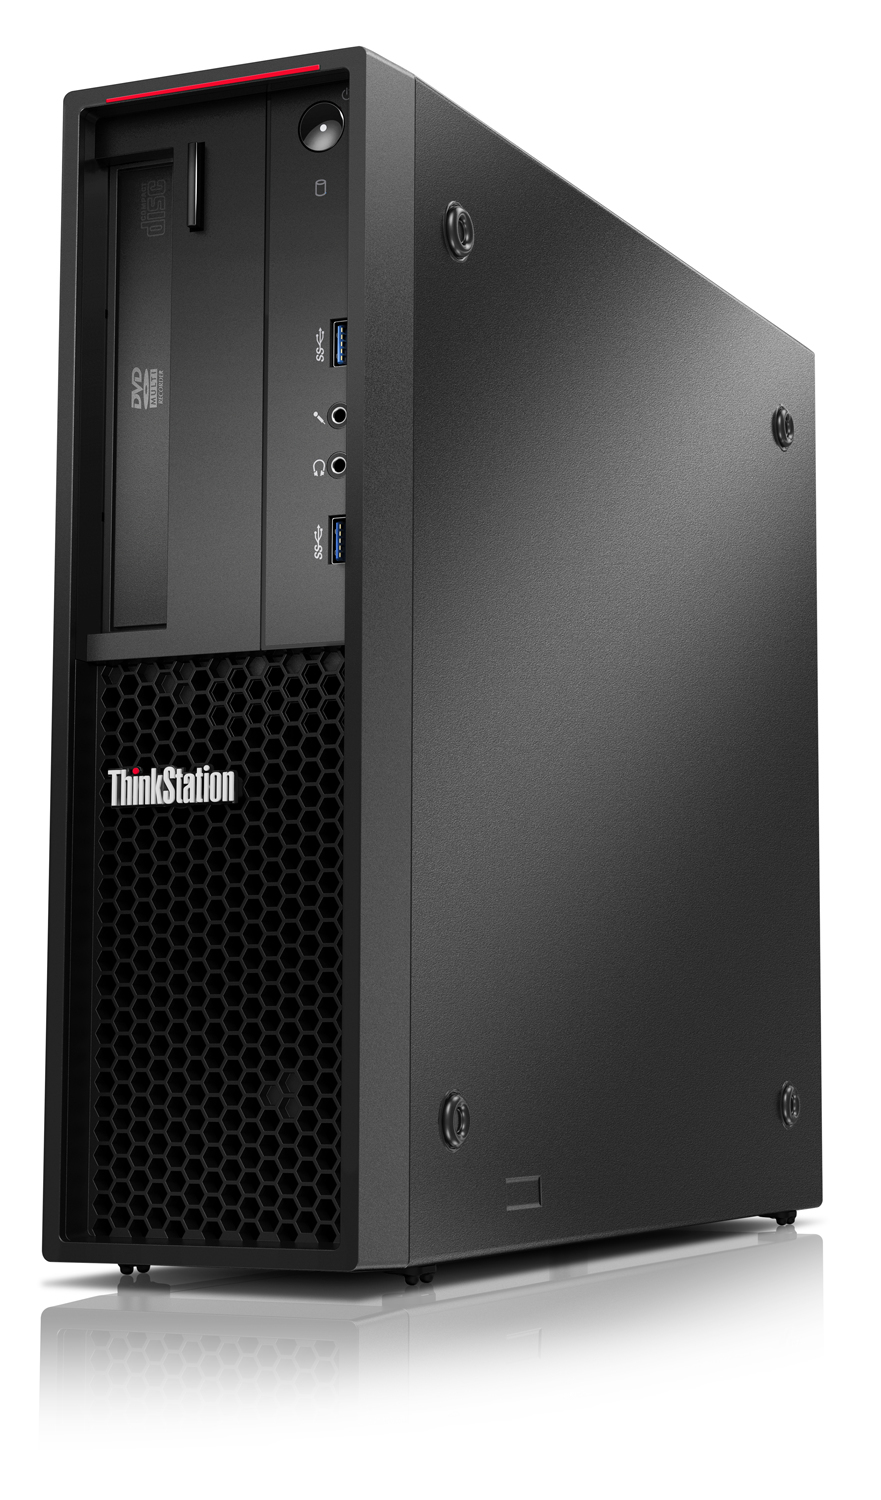 Lenovo ThinkStation P310 3.4GHz i7-6700 SFF Black Workstation